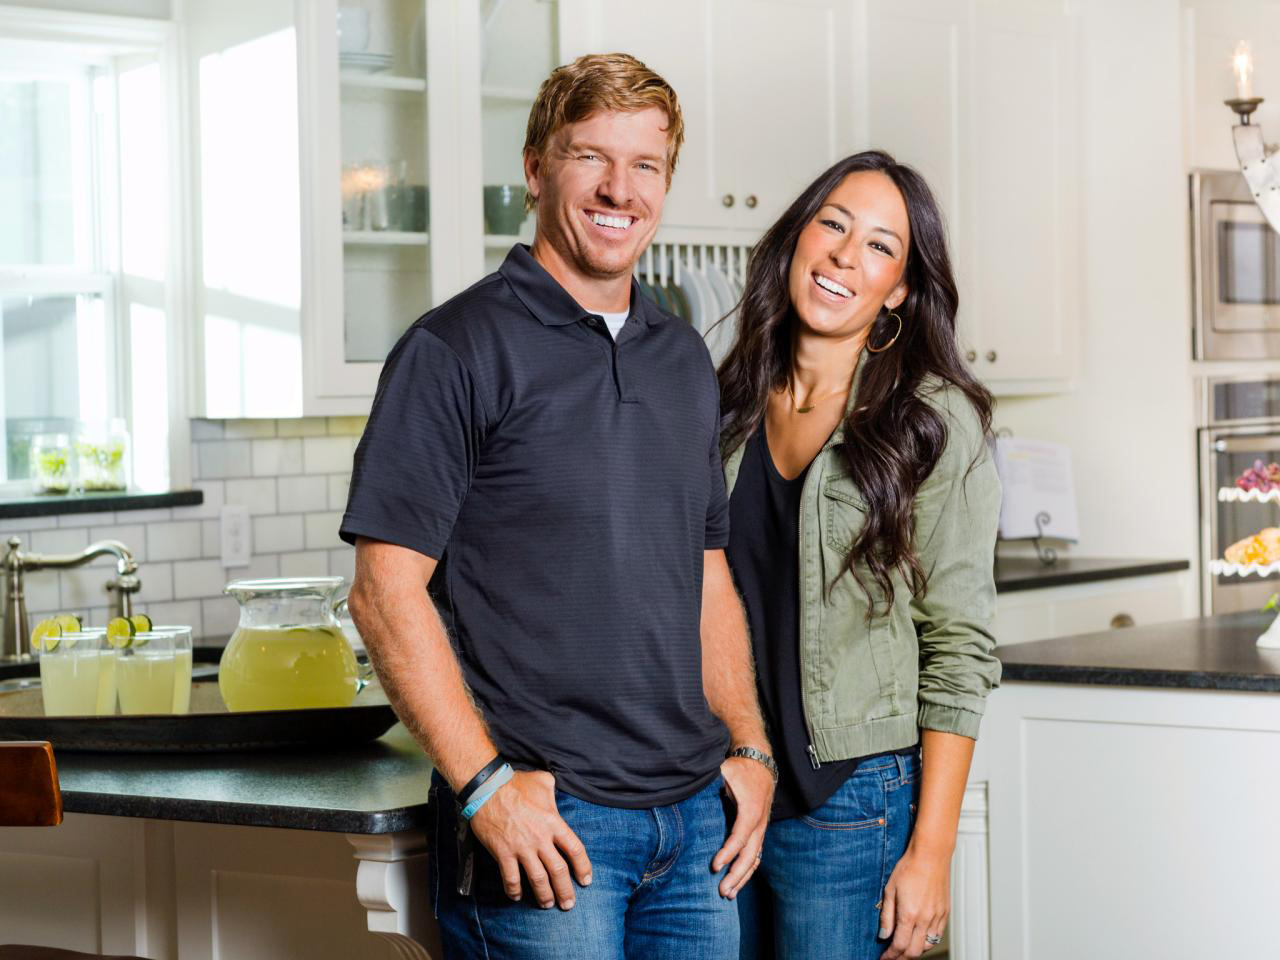 joanna gaines engagement ring story southern living. Black Bedroom Furniture Sets. Home Design Ideas